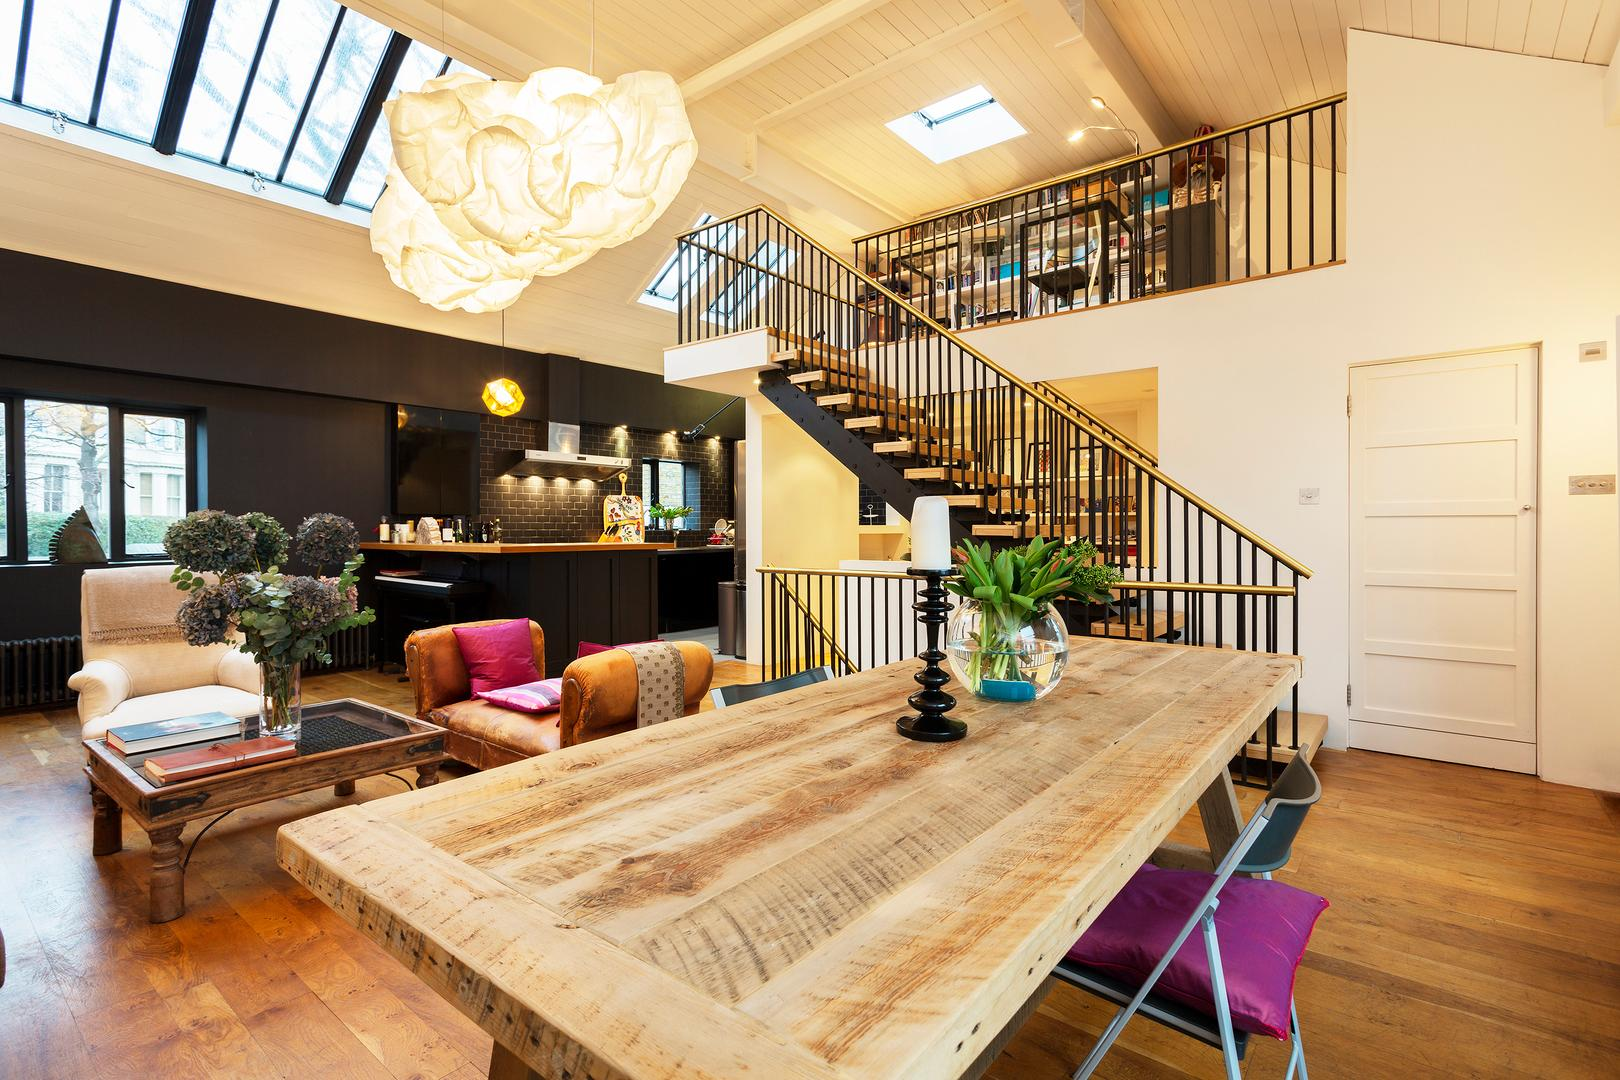 Property Image 2 - Spectacular Artistic Mews House in Stylish Notting Hill